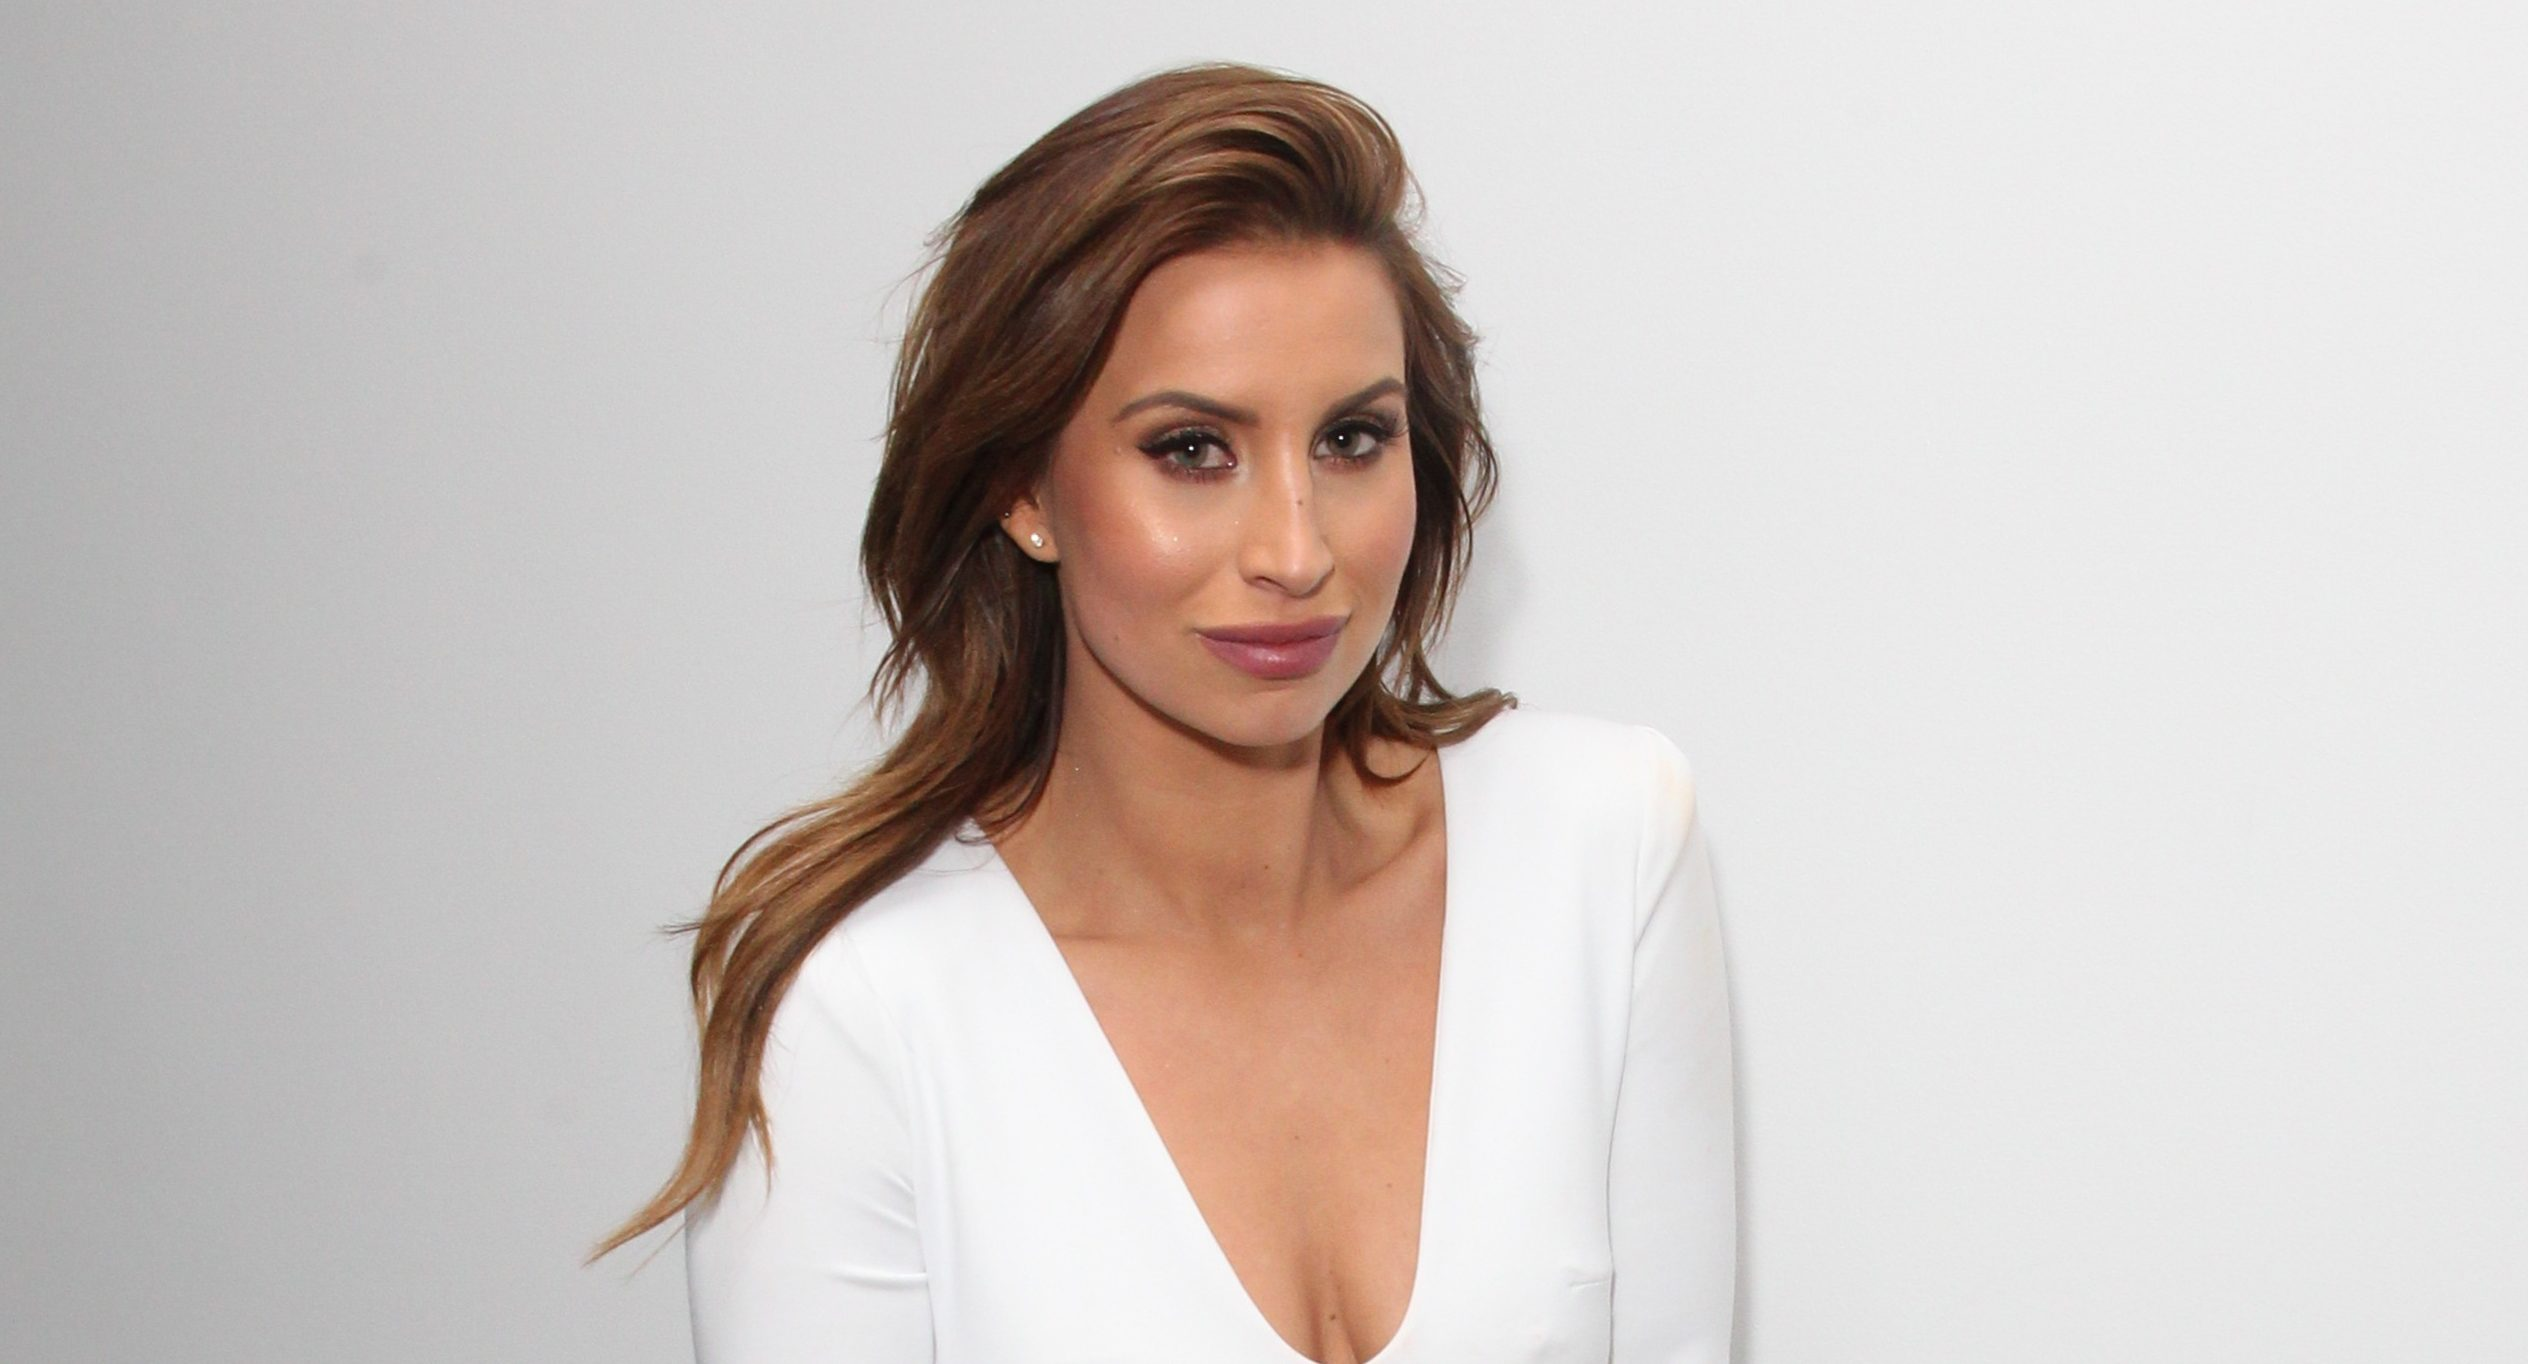 Ferne McCann shares first pic of daughter Sunday's little face on cover of glossy